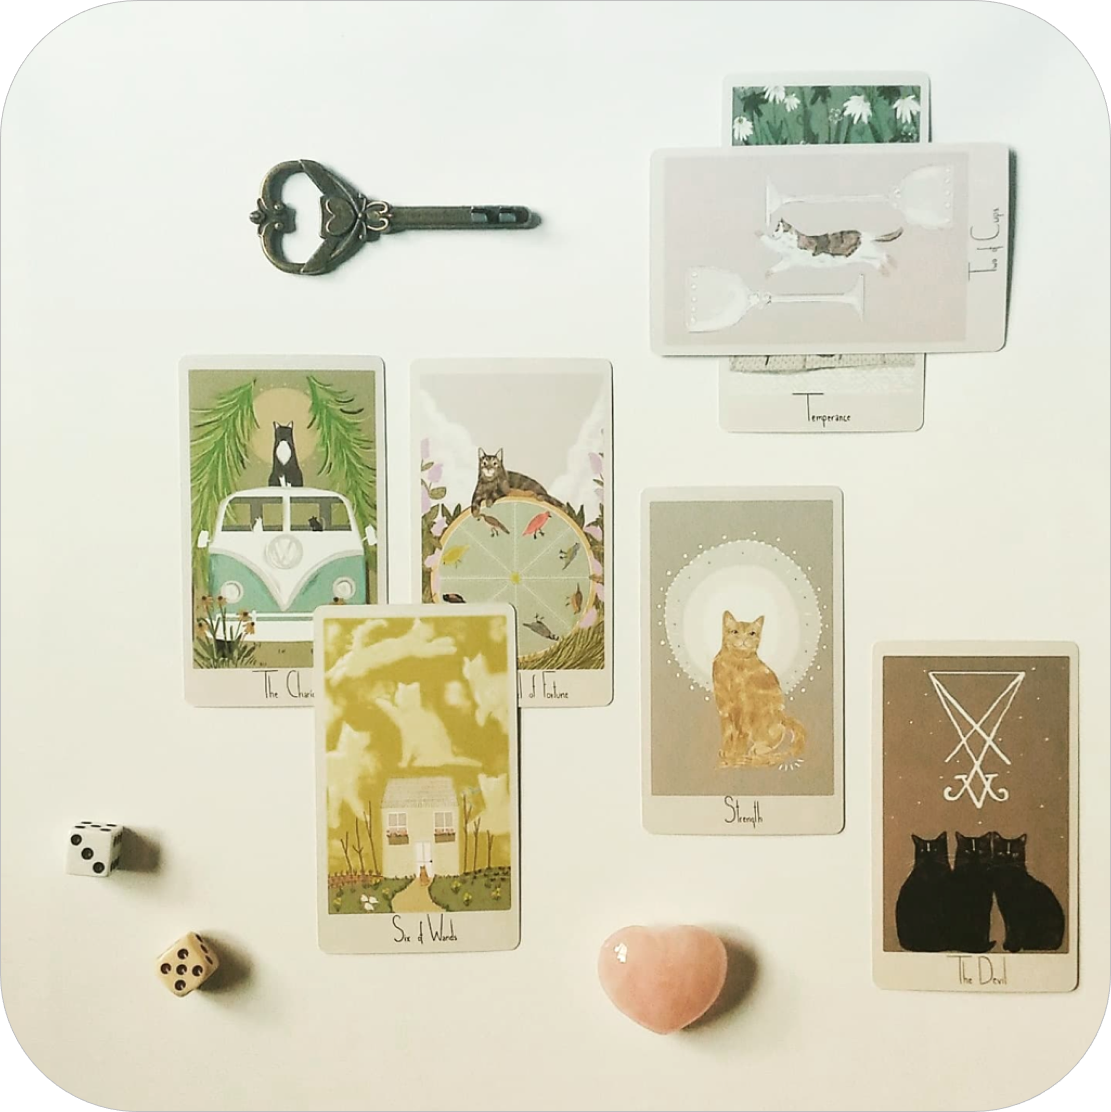 A tarot spread is kind of like a ROAD MAP that captures your unique perspecives and thought process - When you think about it, a tarot spread is essentially a creative piece that is super functional, super expressive, and super conductive of the ideas that you're trying to...wait for it...